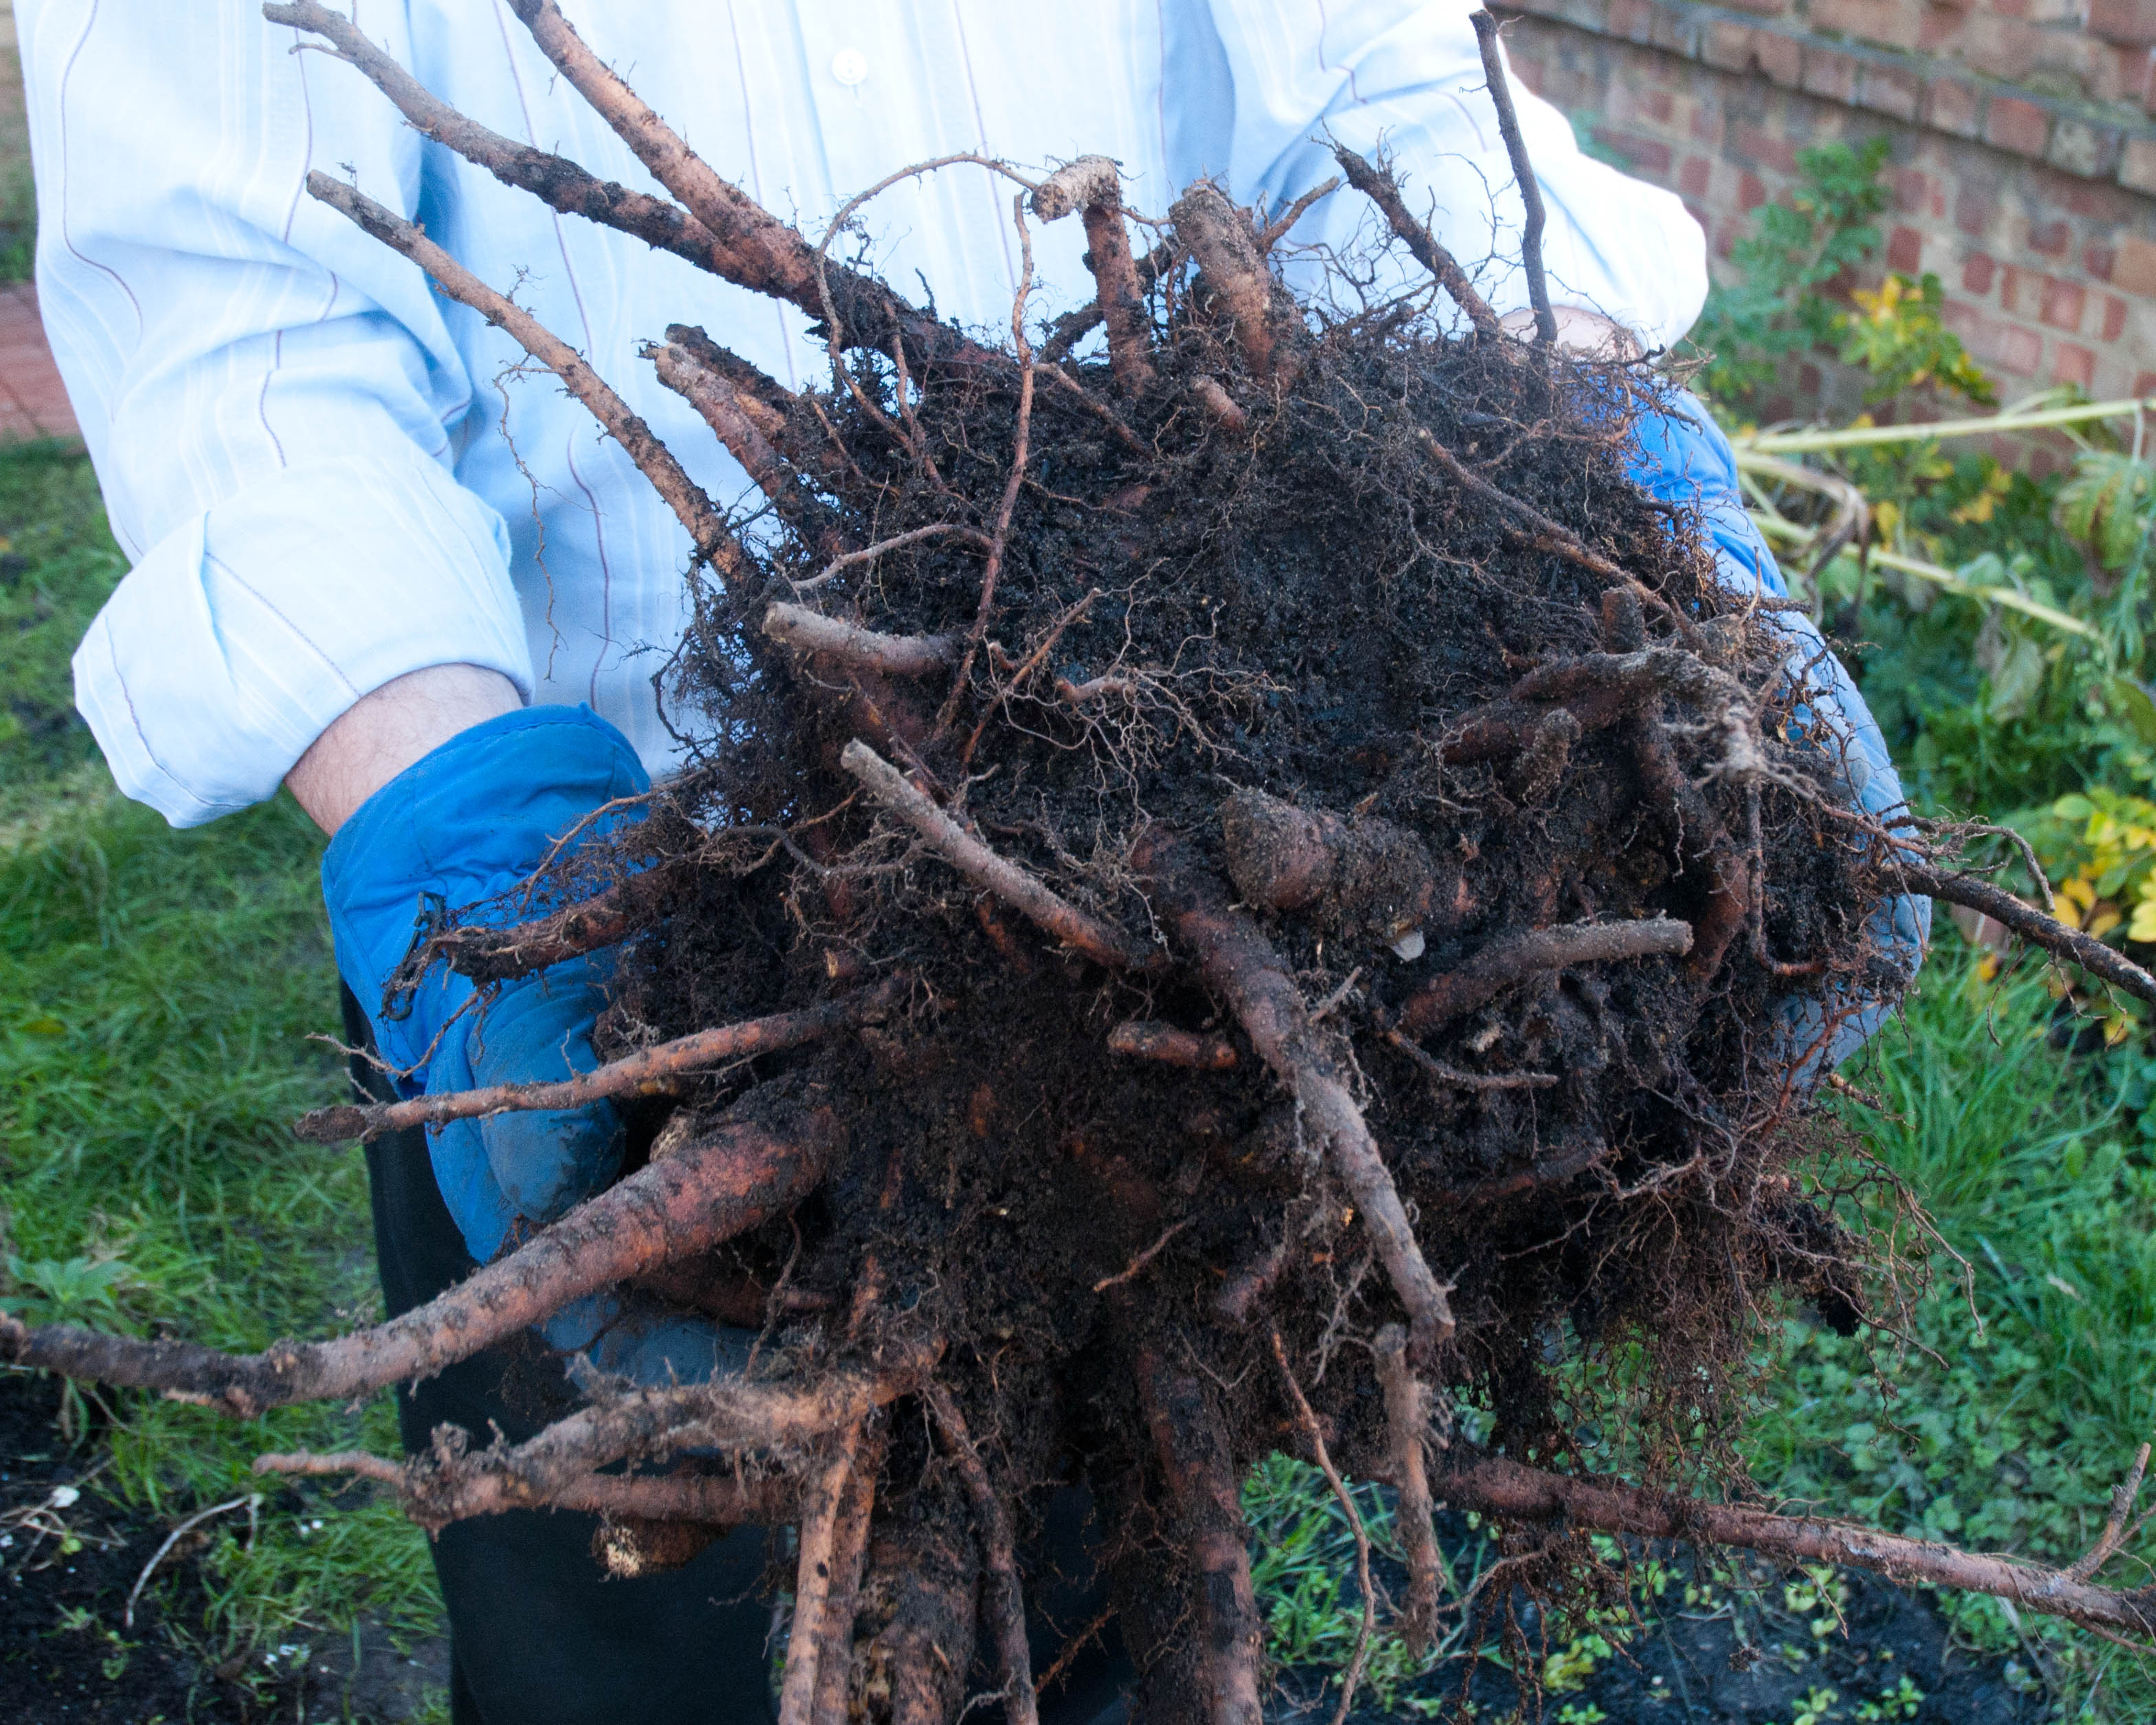 How to plant rhubarb in the fall - I Needed A Rhubarb Crown For Pics For My Book Pronto So I Thought The Best Thing To Do Was To Dig Up And Divide A Rhubarb Plant On My Allotment